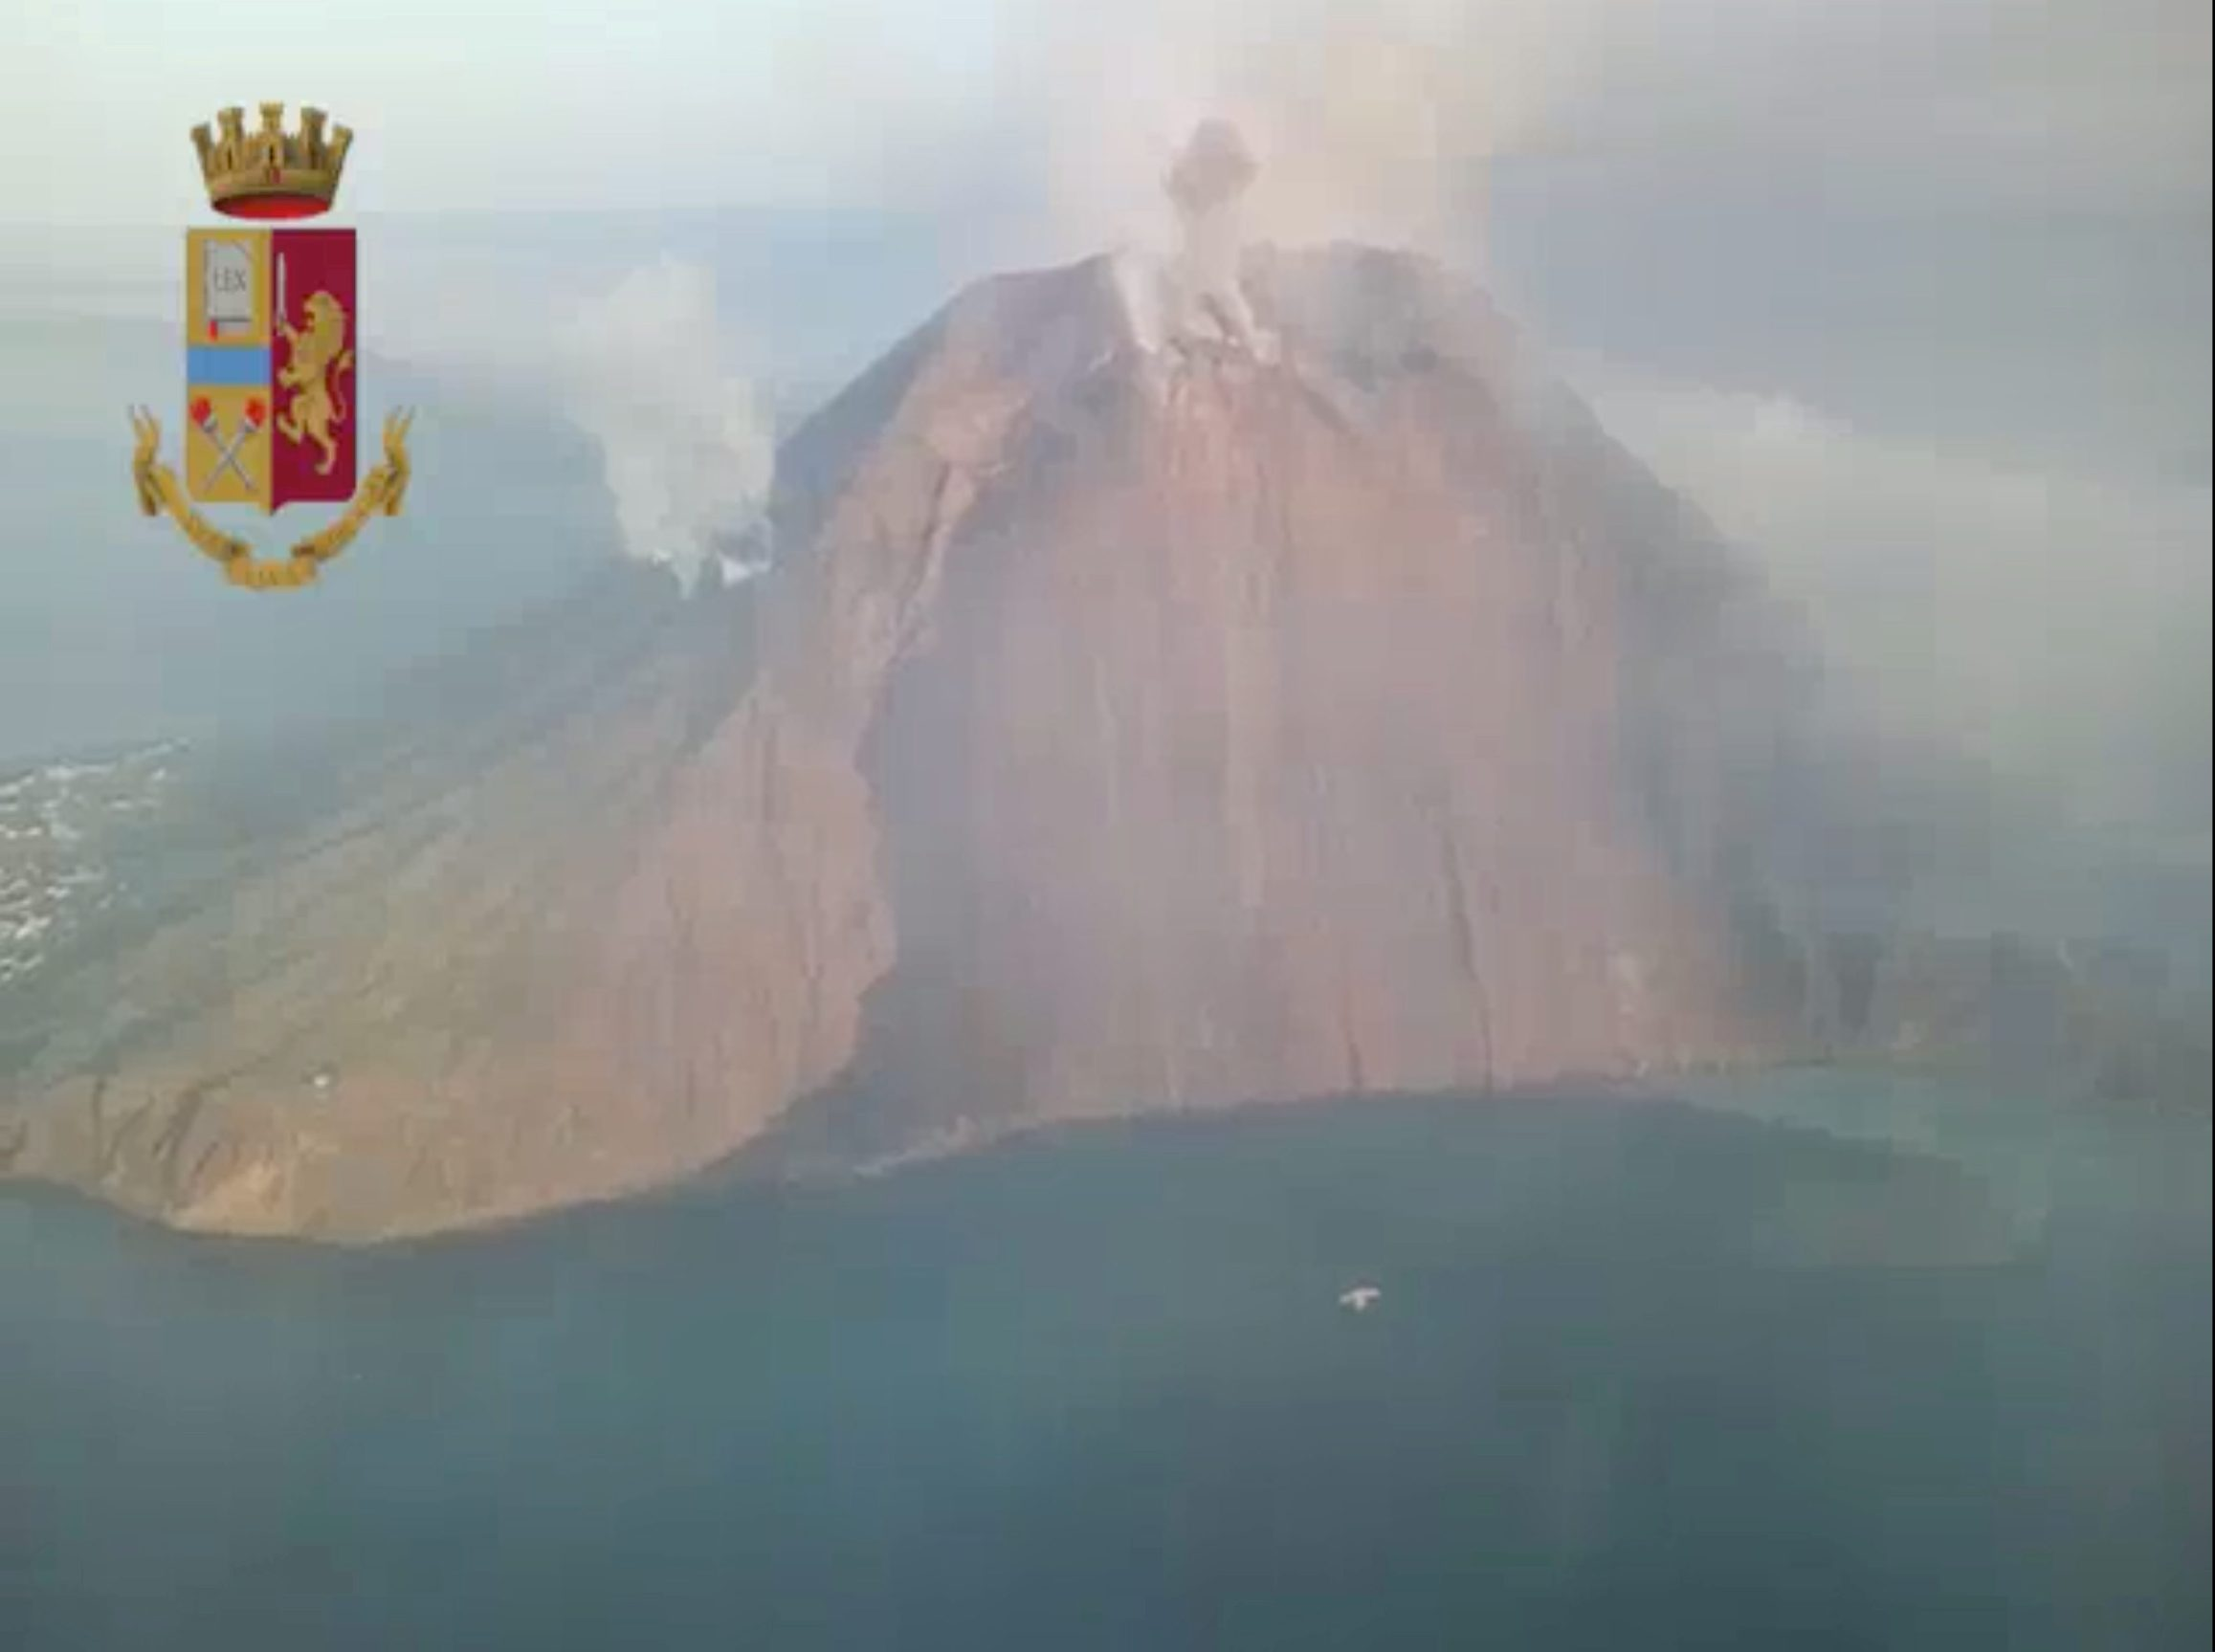 REFILE - QUALITY REPEAT An aerial still image taken from police helicopter video shows ash and smoke rising after a volcanic eruption, seen over Stromboli, Italy July 3, 2019. Coat of arms graphic added at source. Polizia di Stato/Handout via REUTERS ATTENTION EDITORS - THIS IMAGE HAS BEEN SUPPLIED BY A THIRD PARTY.